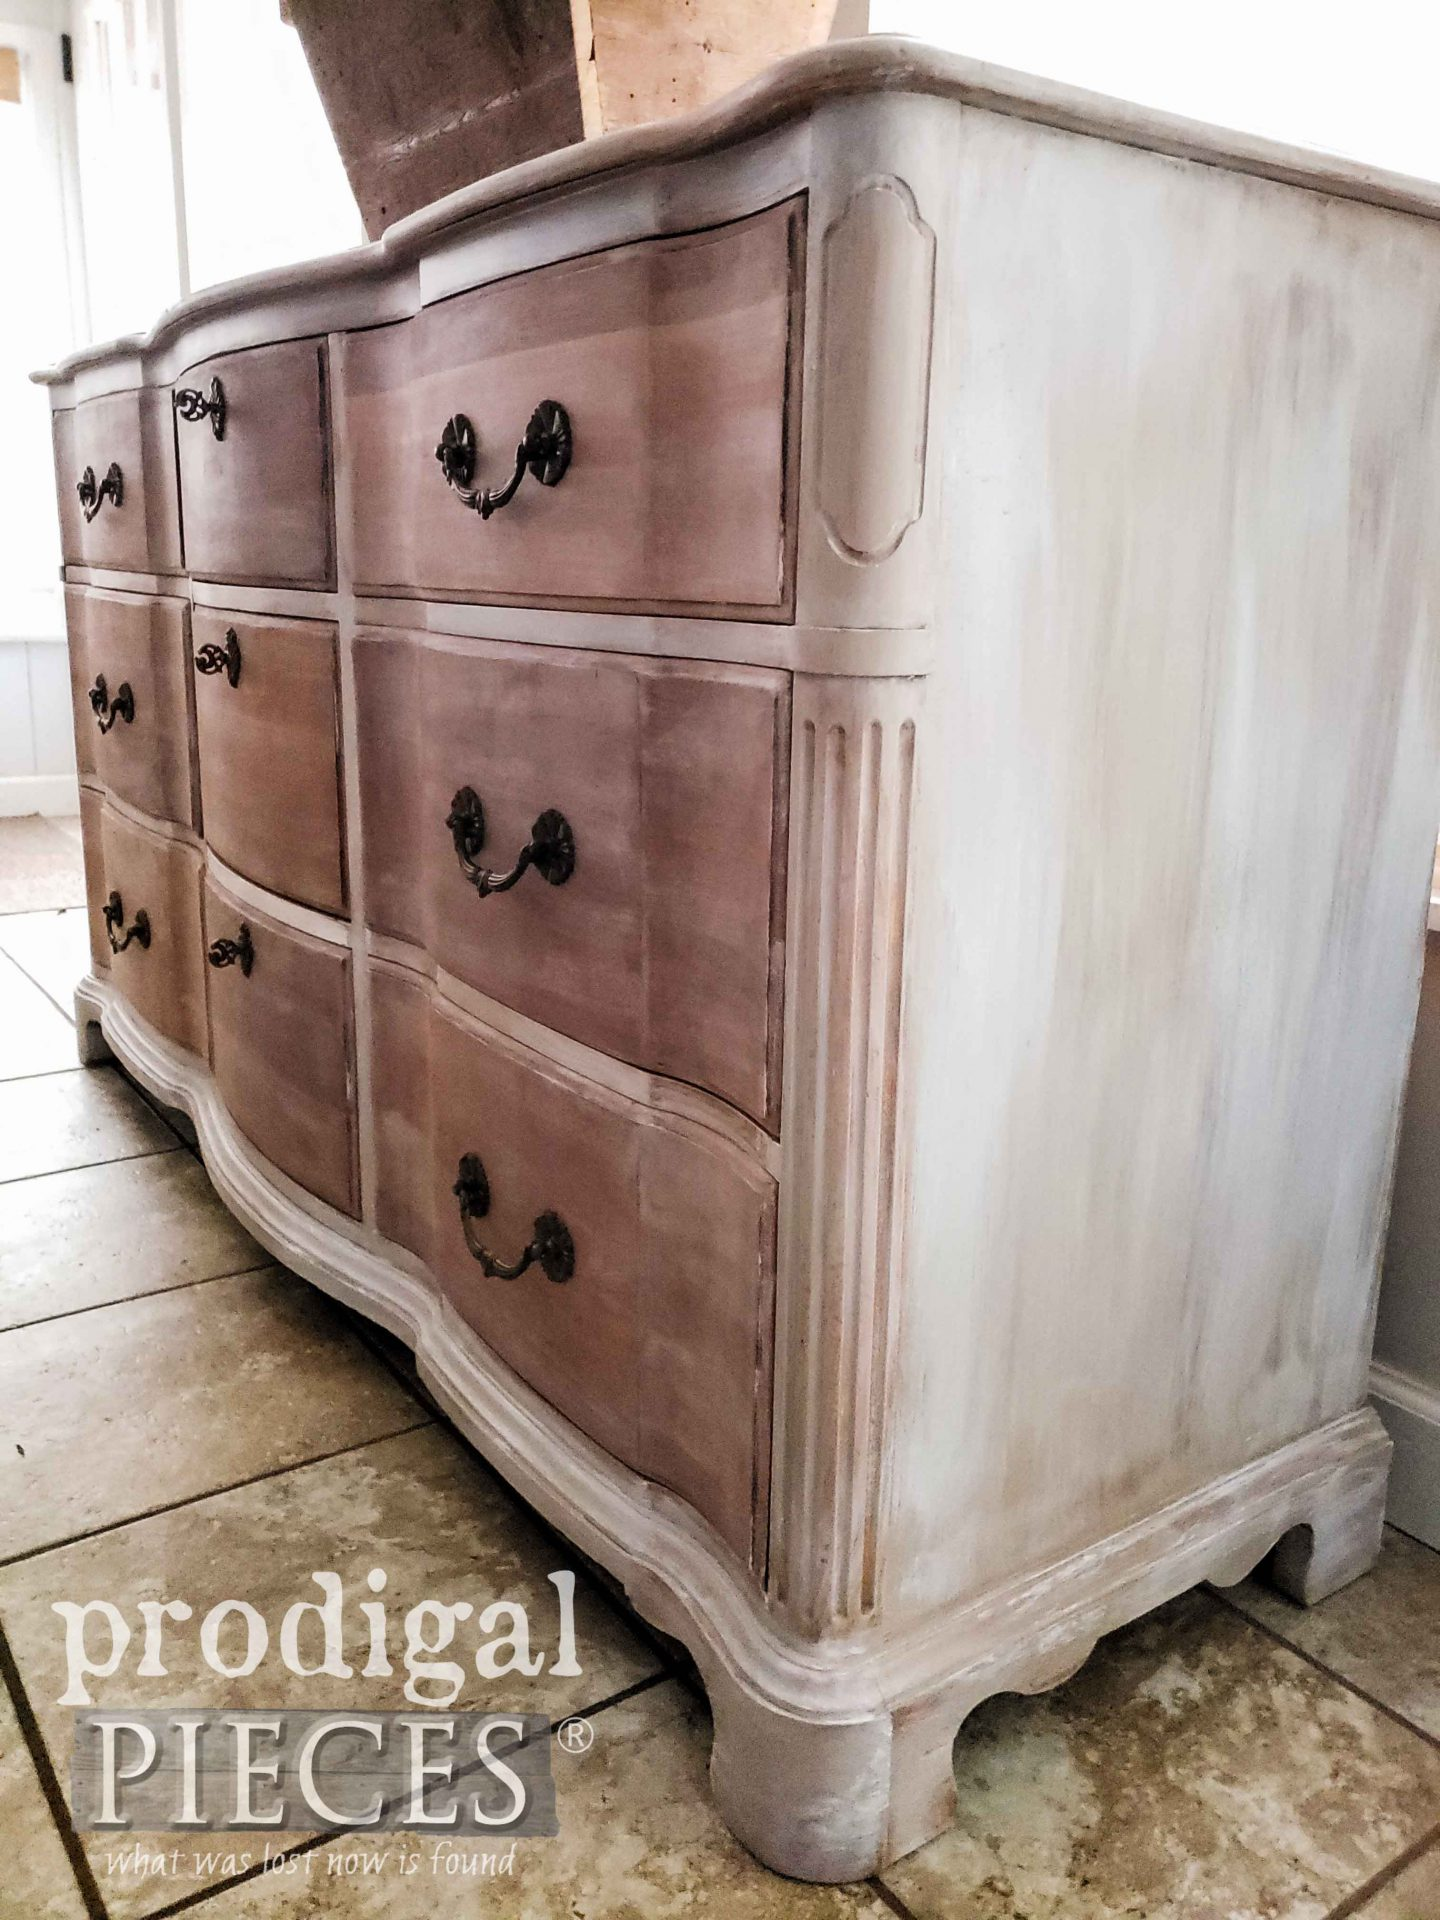 Vintage Serpentine Dresser with Paint Layering Technique by Larissa of Prodigal Pieces | prodigalpieces.com #prodigalpieces #home #farmhouse #french #homedecor #diy #furniture